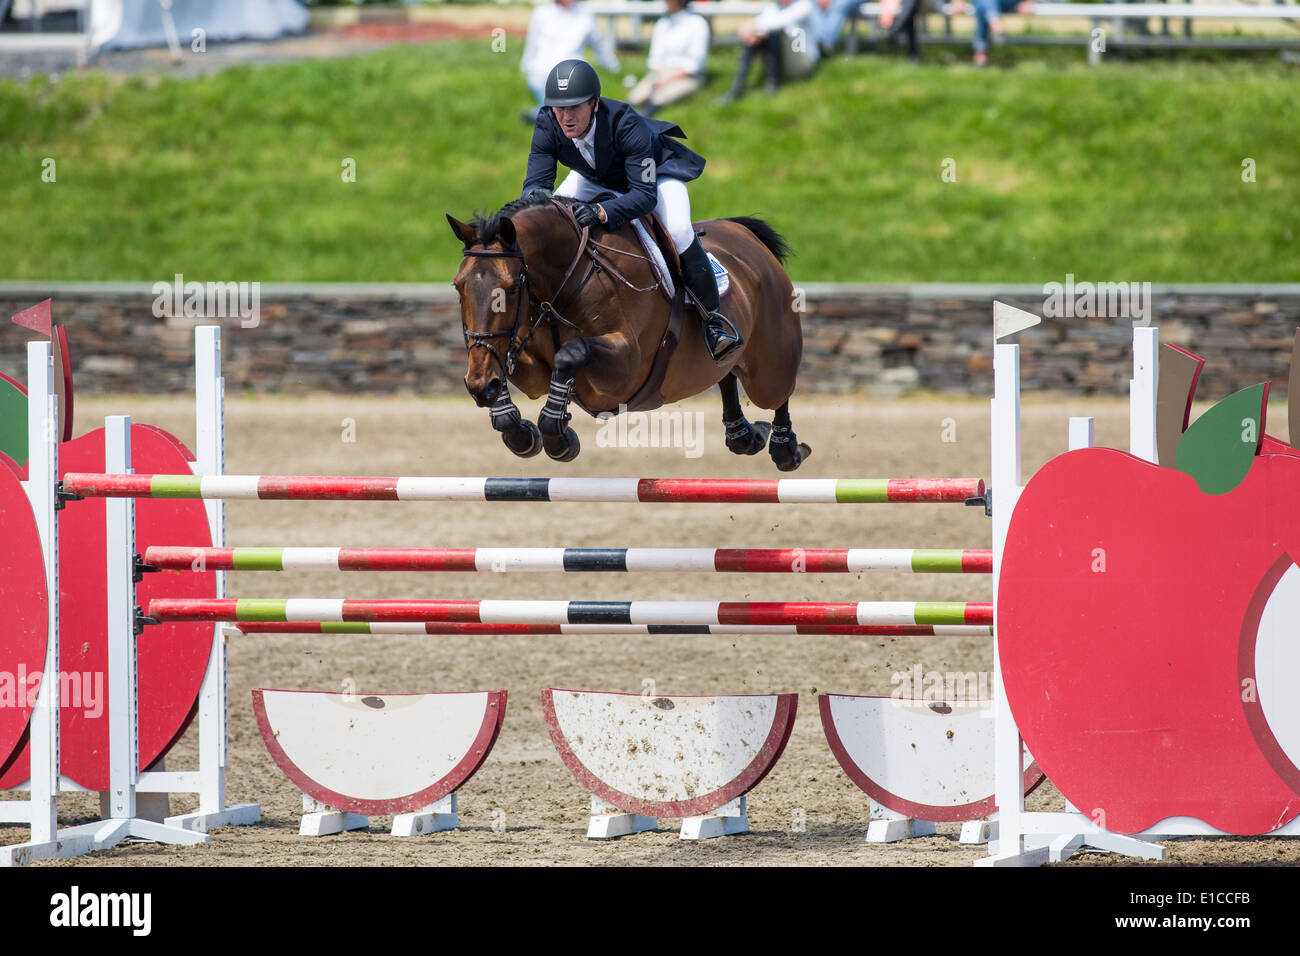 HITS on the Hudson Show Jumping, Saugerties, NY - Stock Image